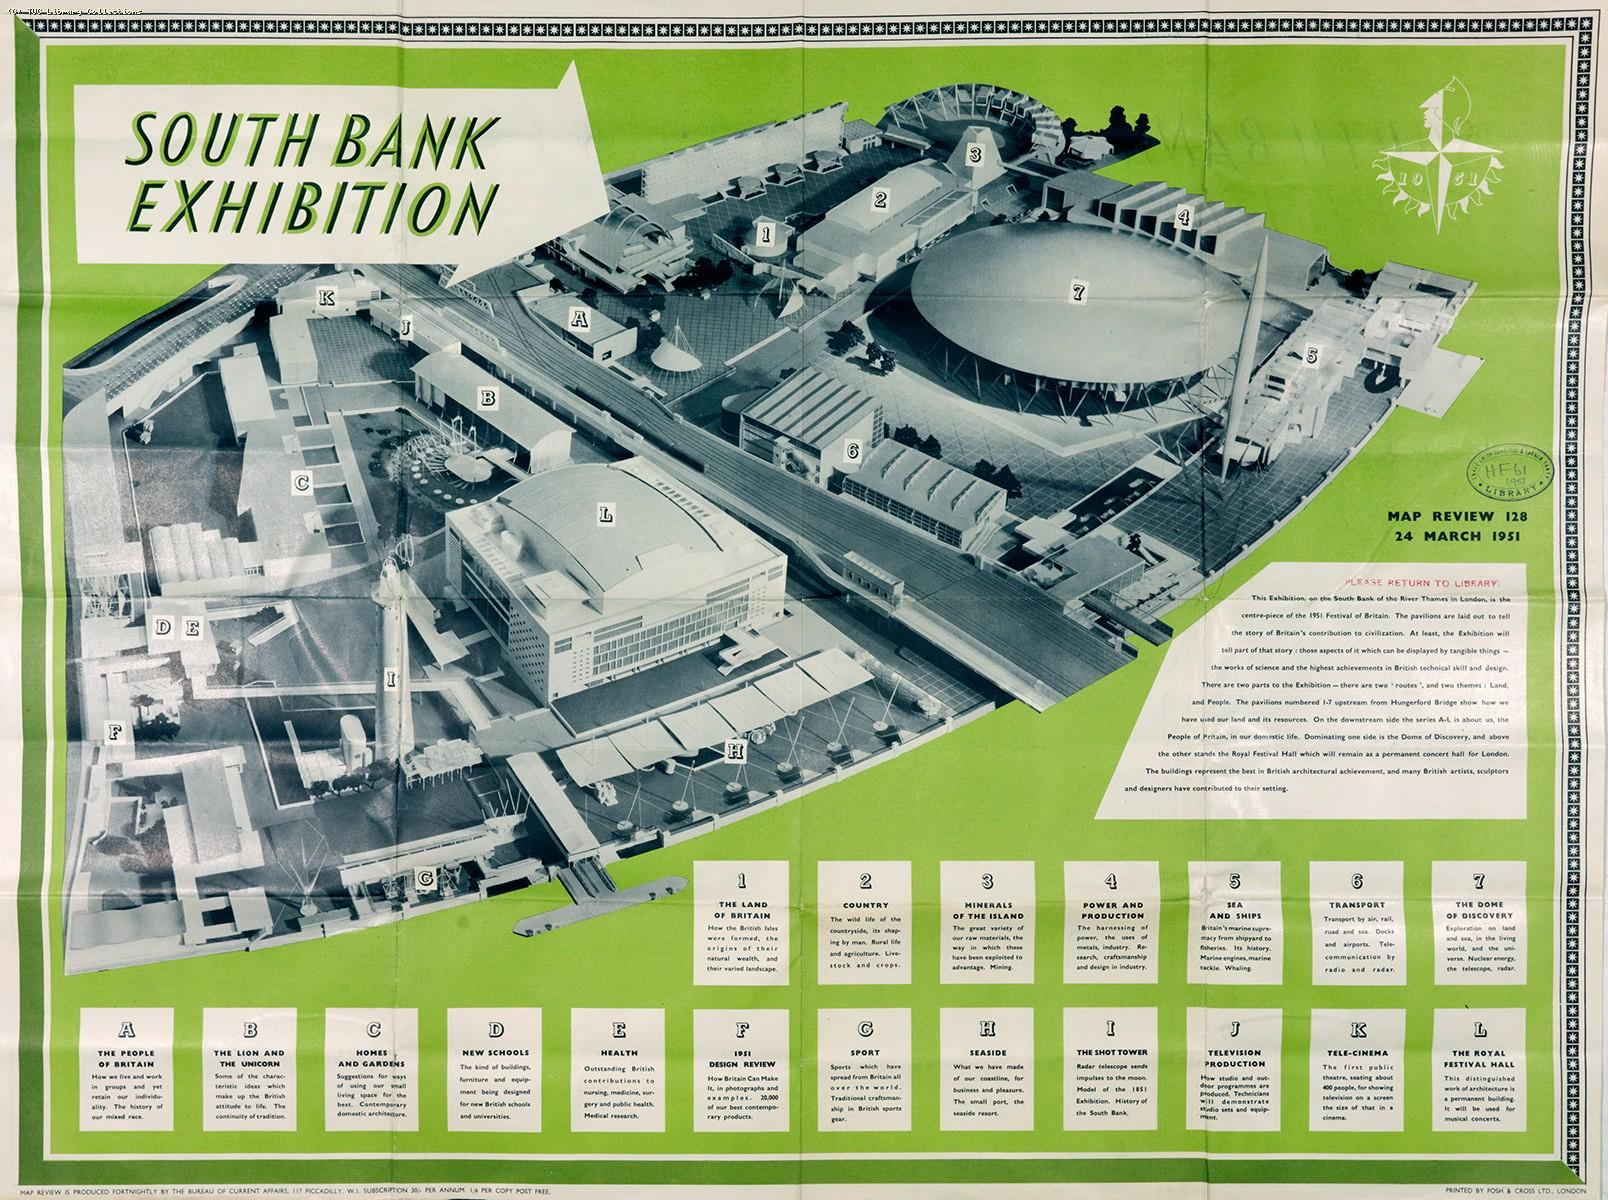 South Bank Exhibition - poster, 1951